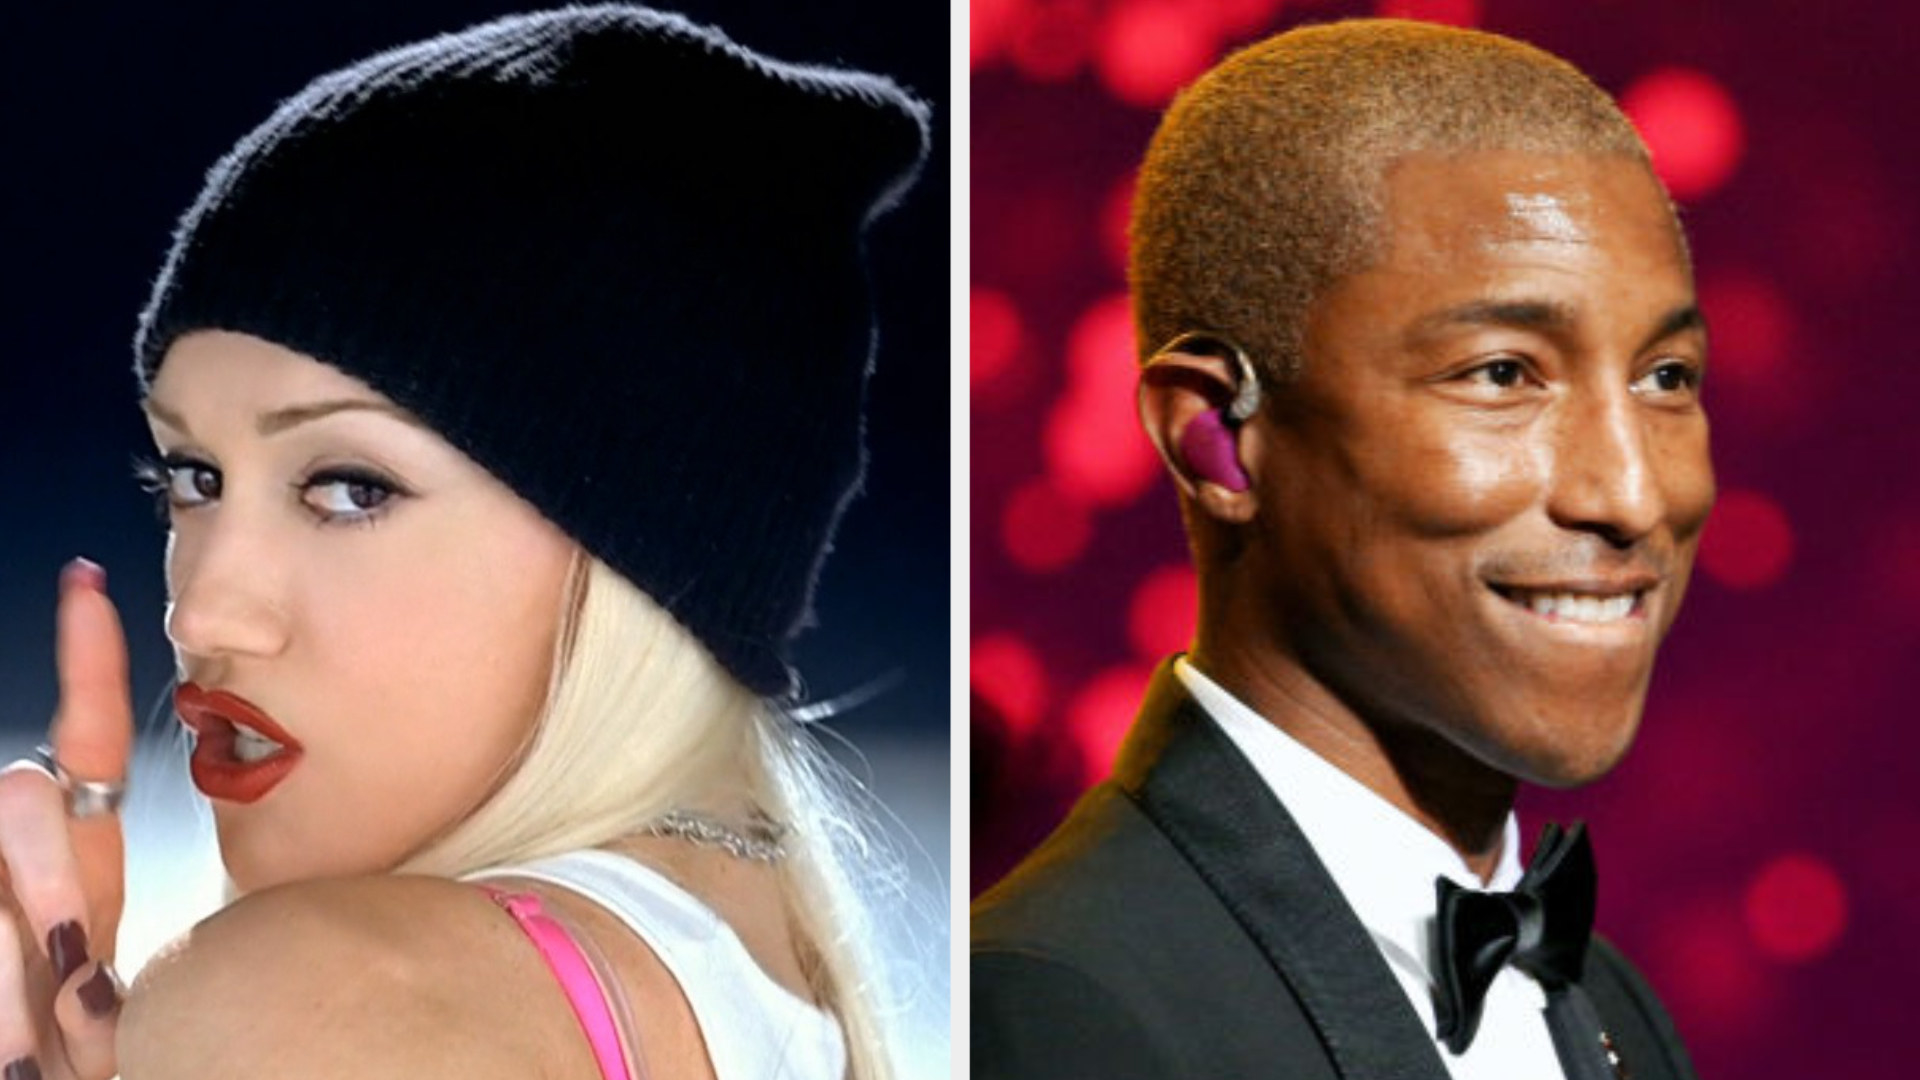 """Gwen shushing the camera in the """"Hollaback Girl"""" music video; Pharrell at an awards show"""